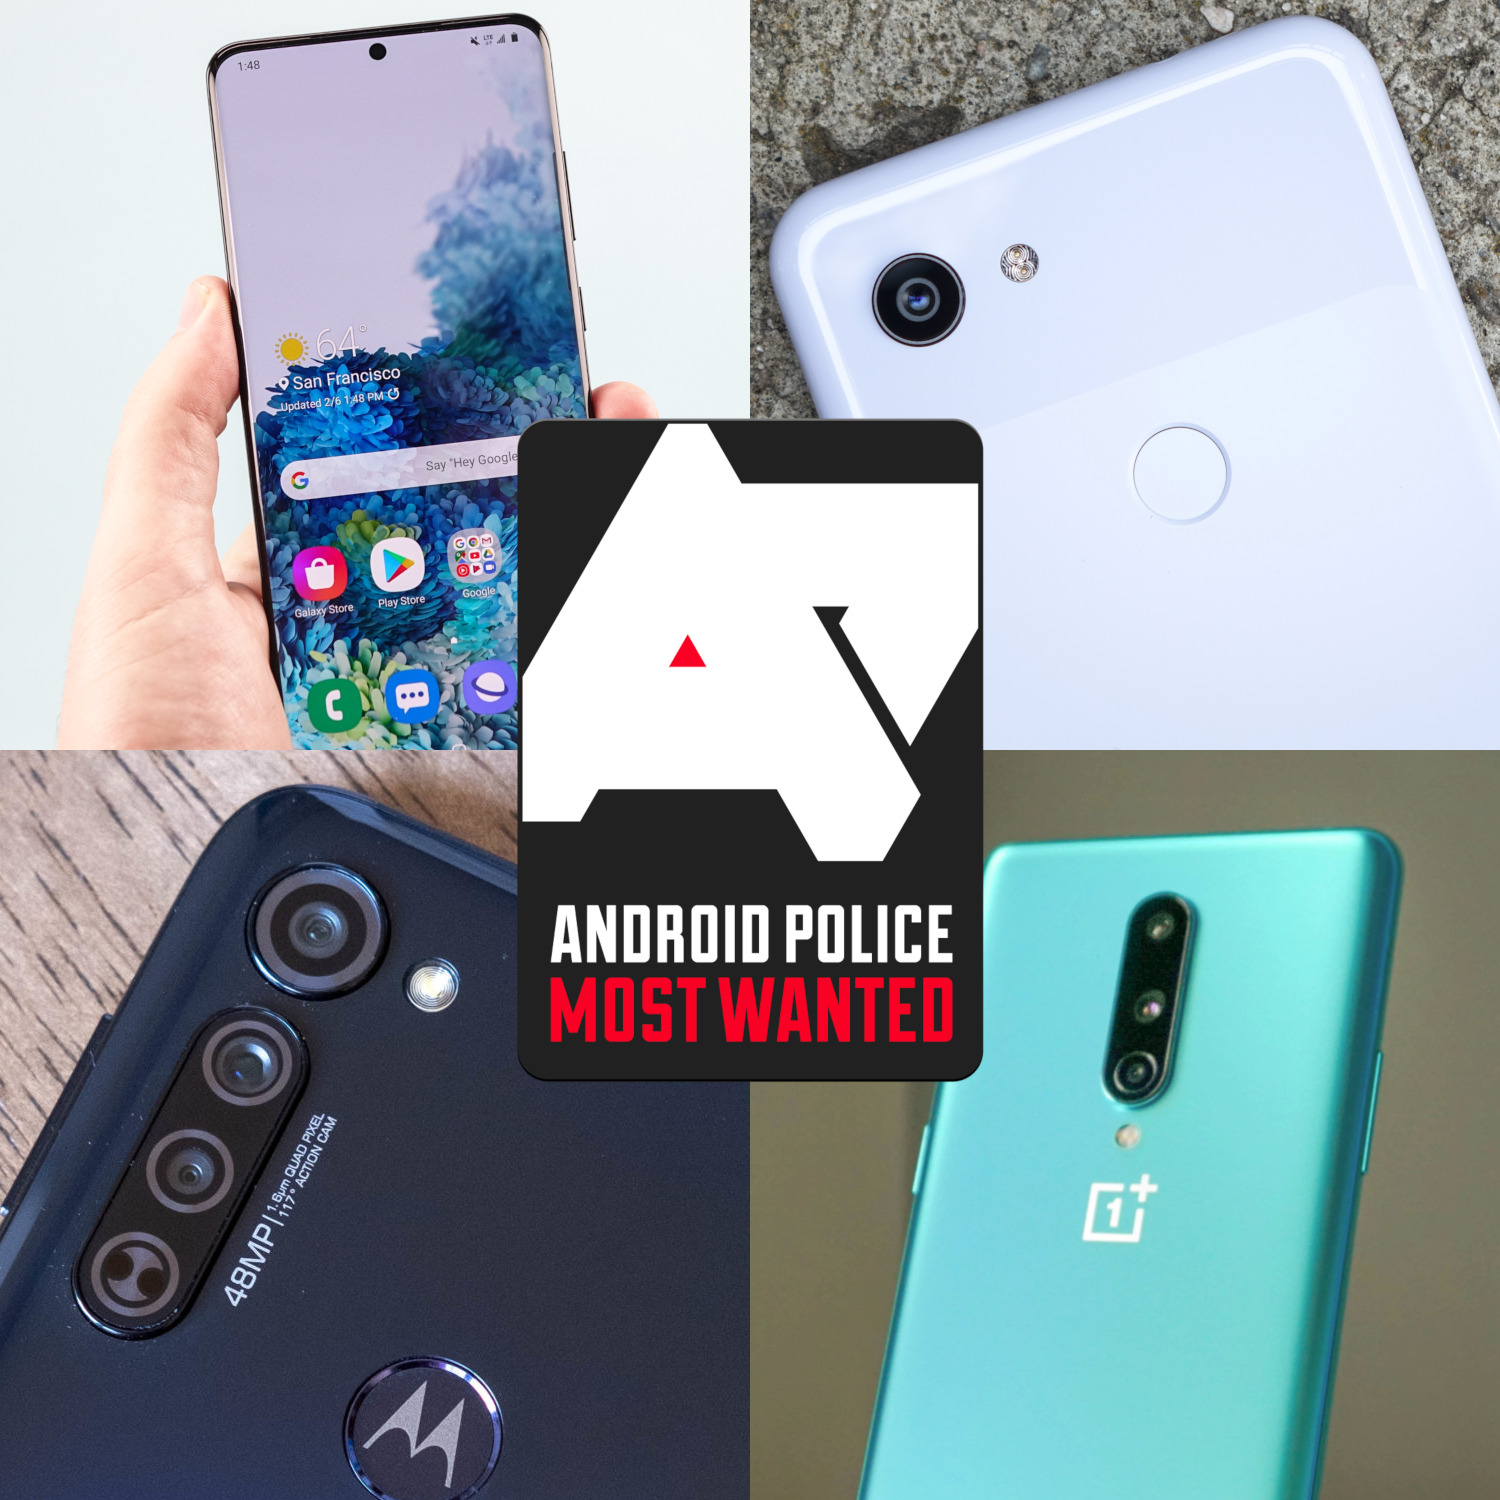 The best Android smartphones you can buy right now (Summer 2020)